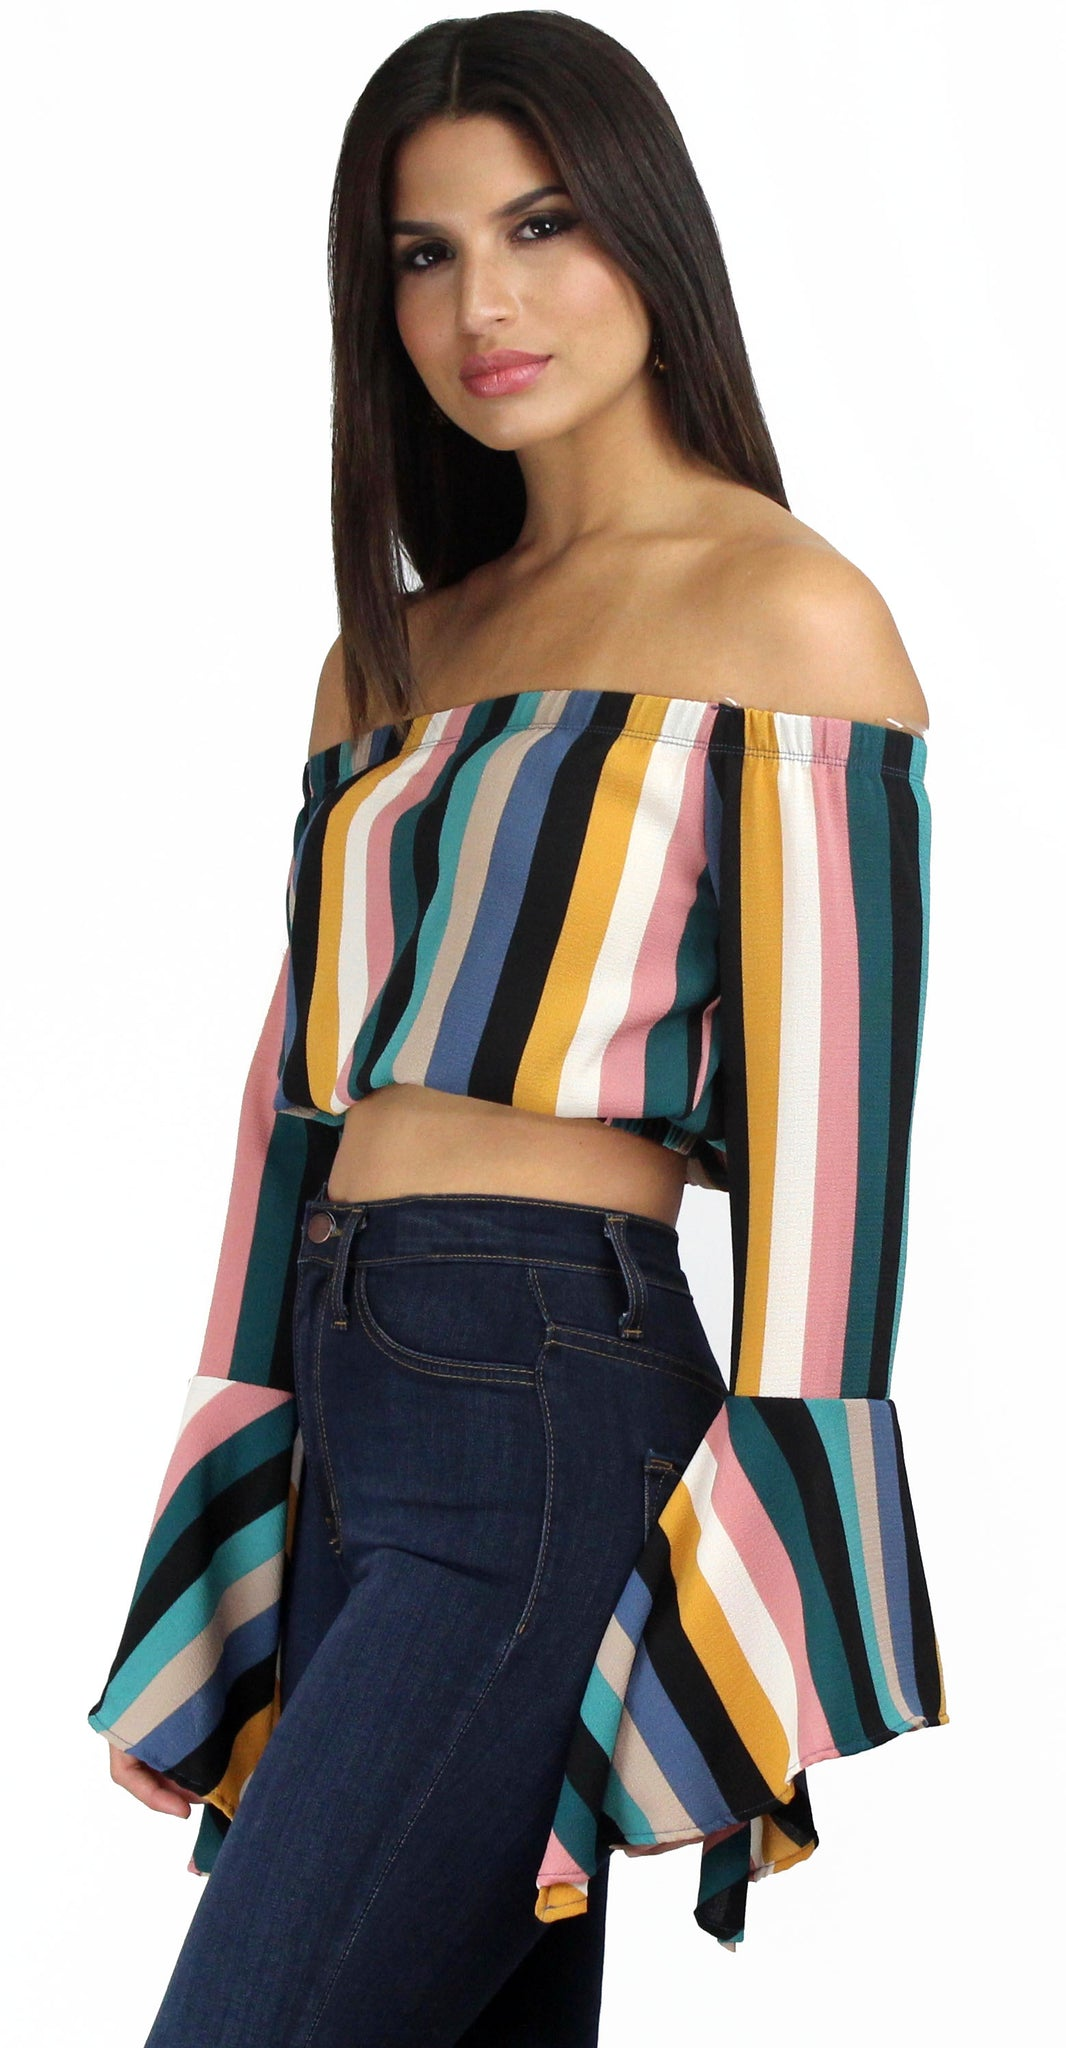 Day Dream in Stripes Off-Shoulder Top